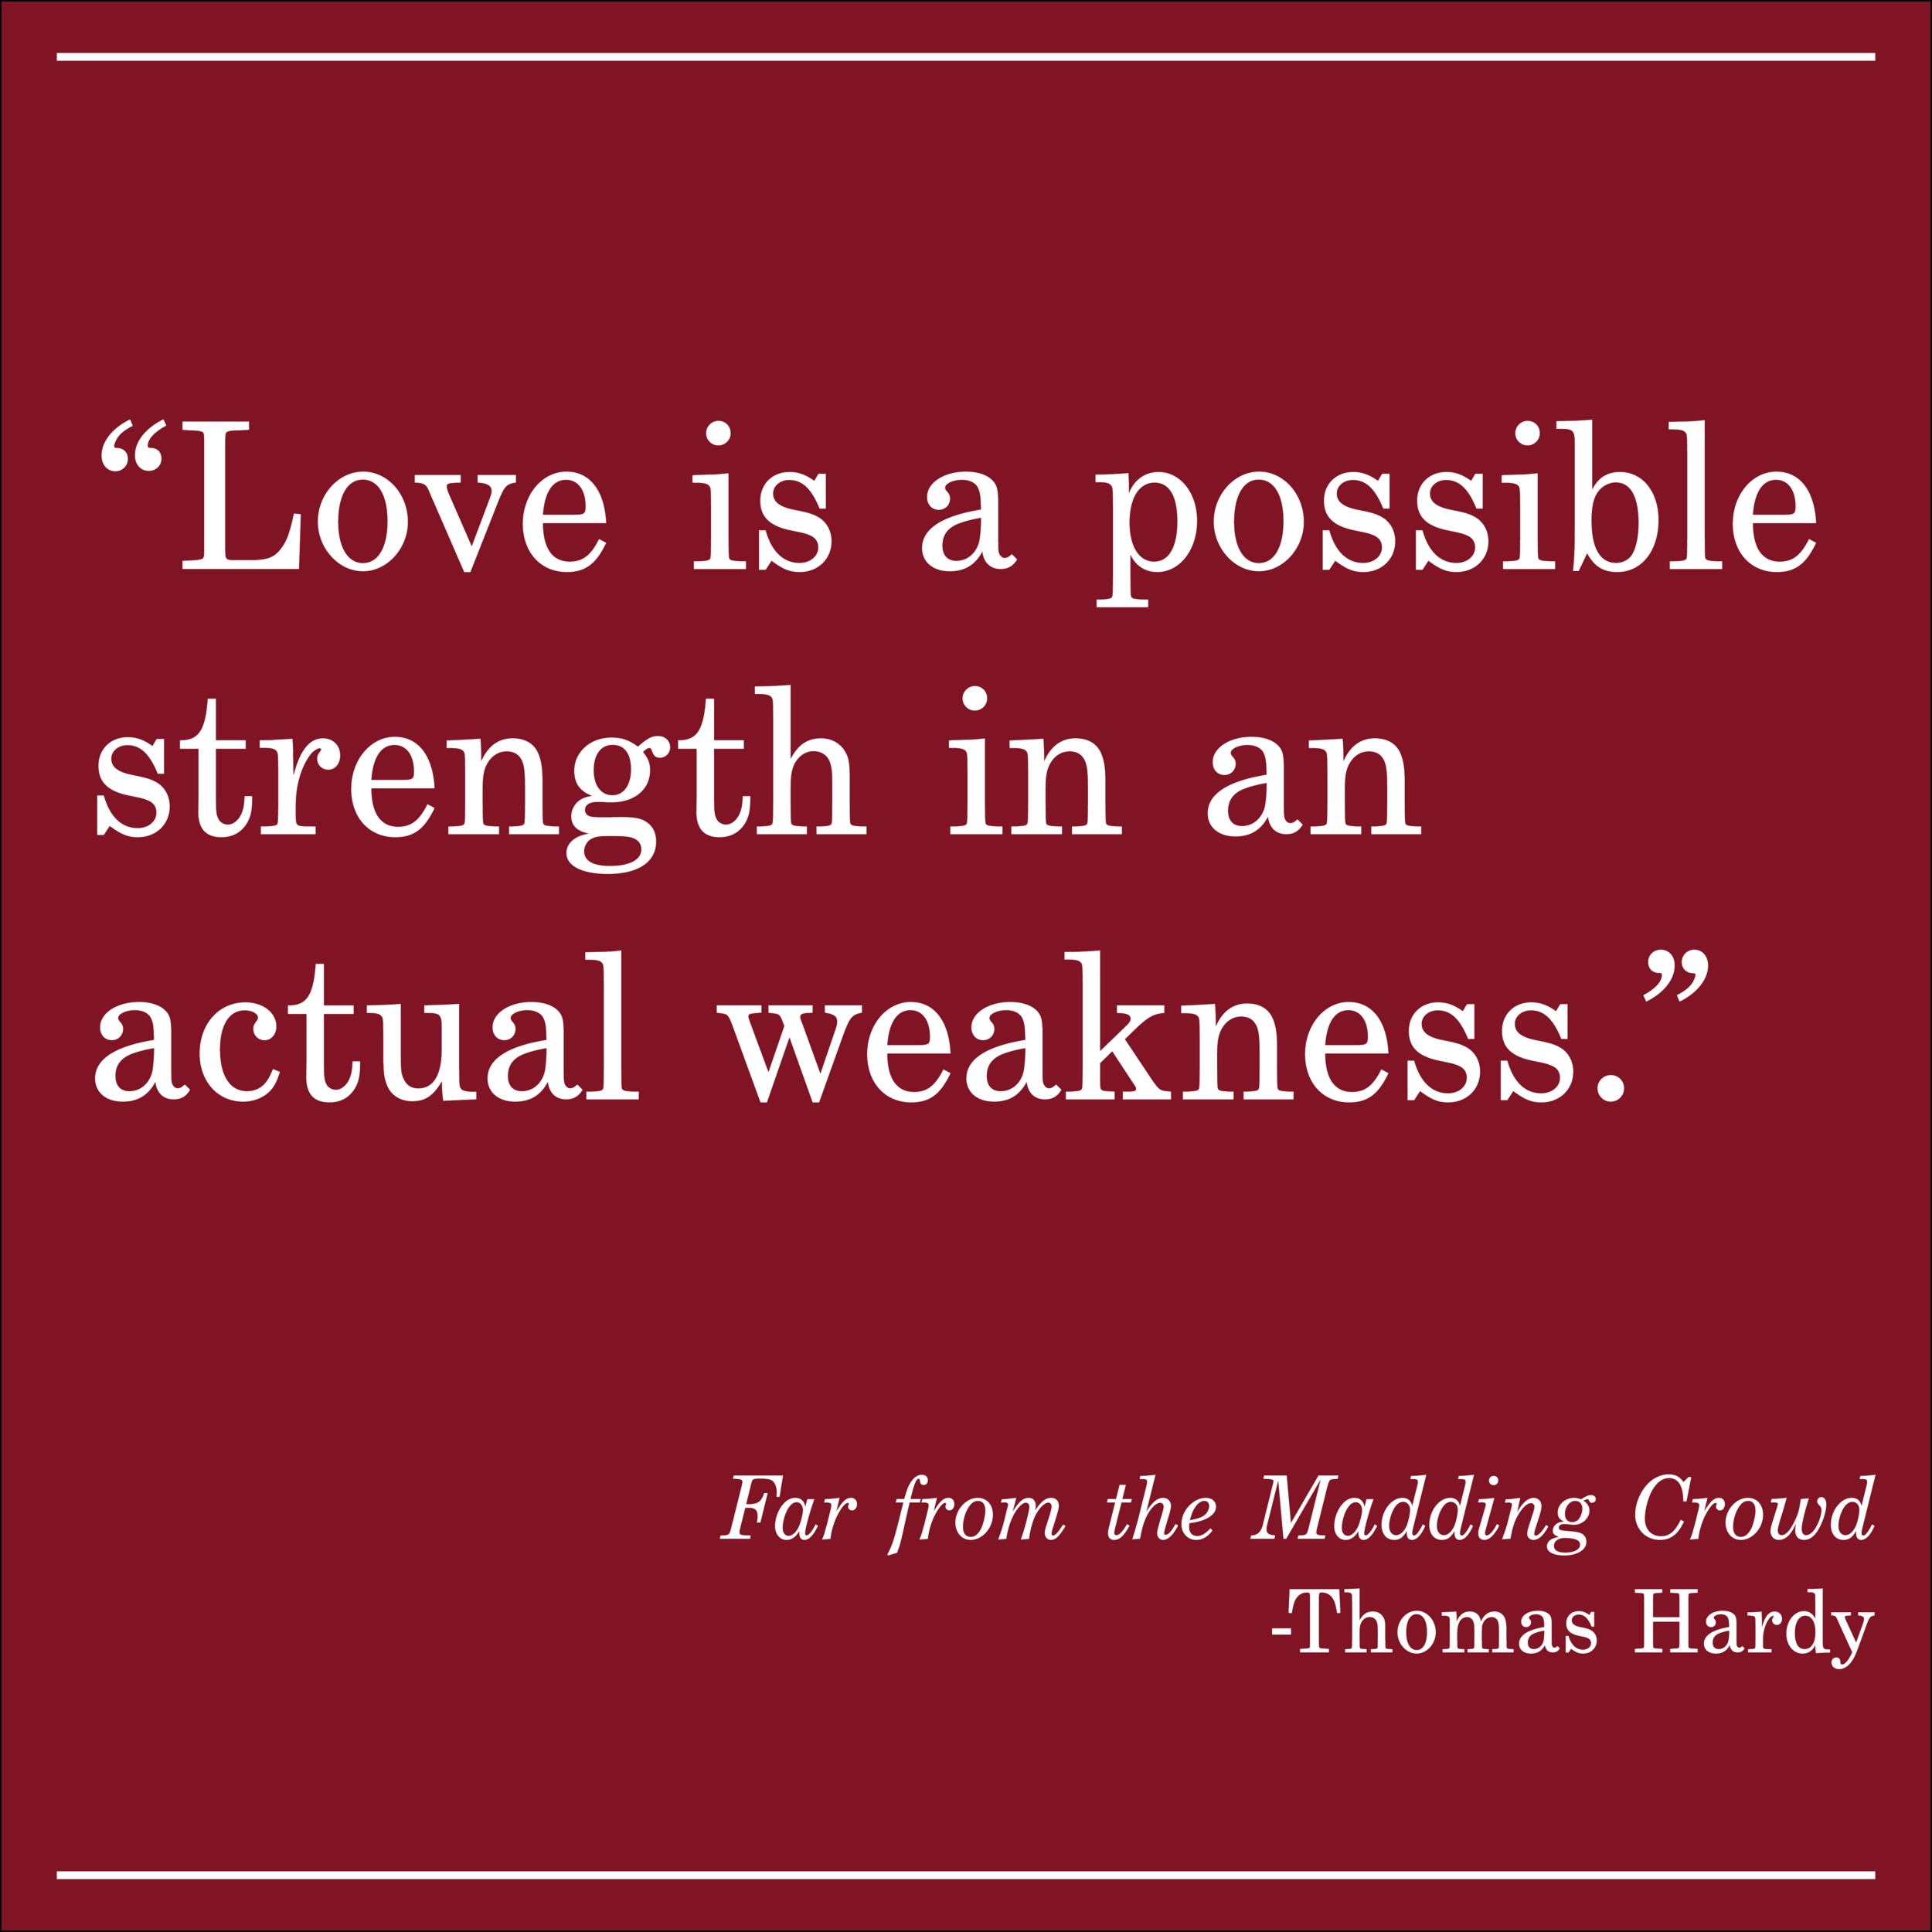 Daily Quote Far From the Madding Crowd by Thomas Hardy